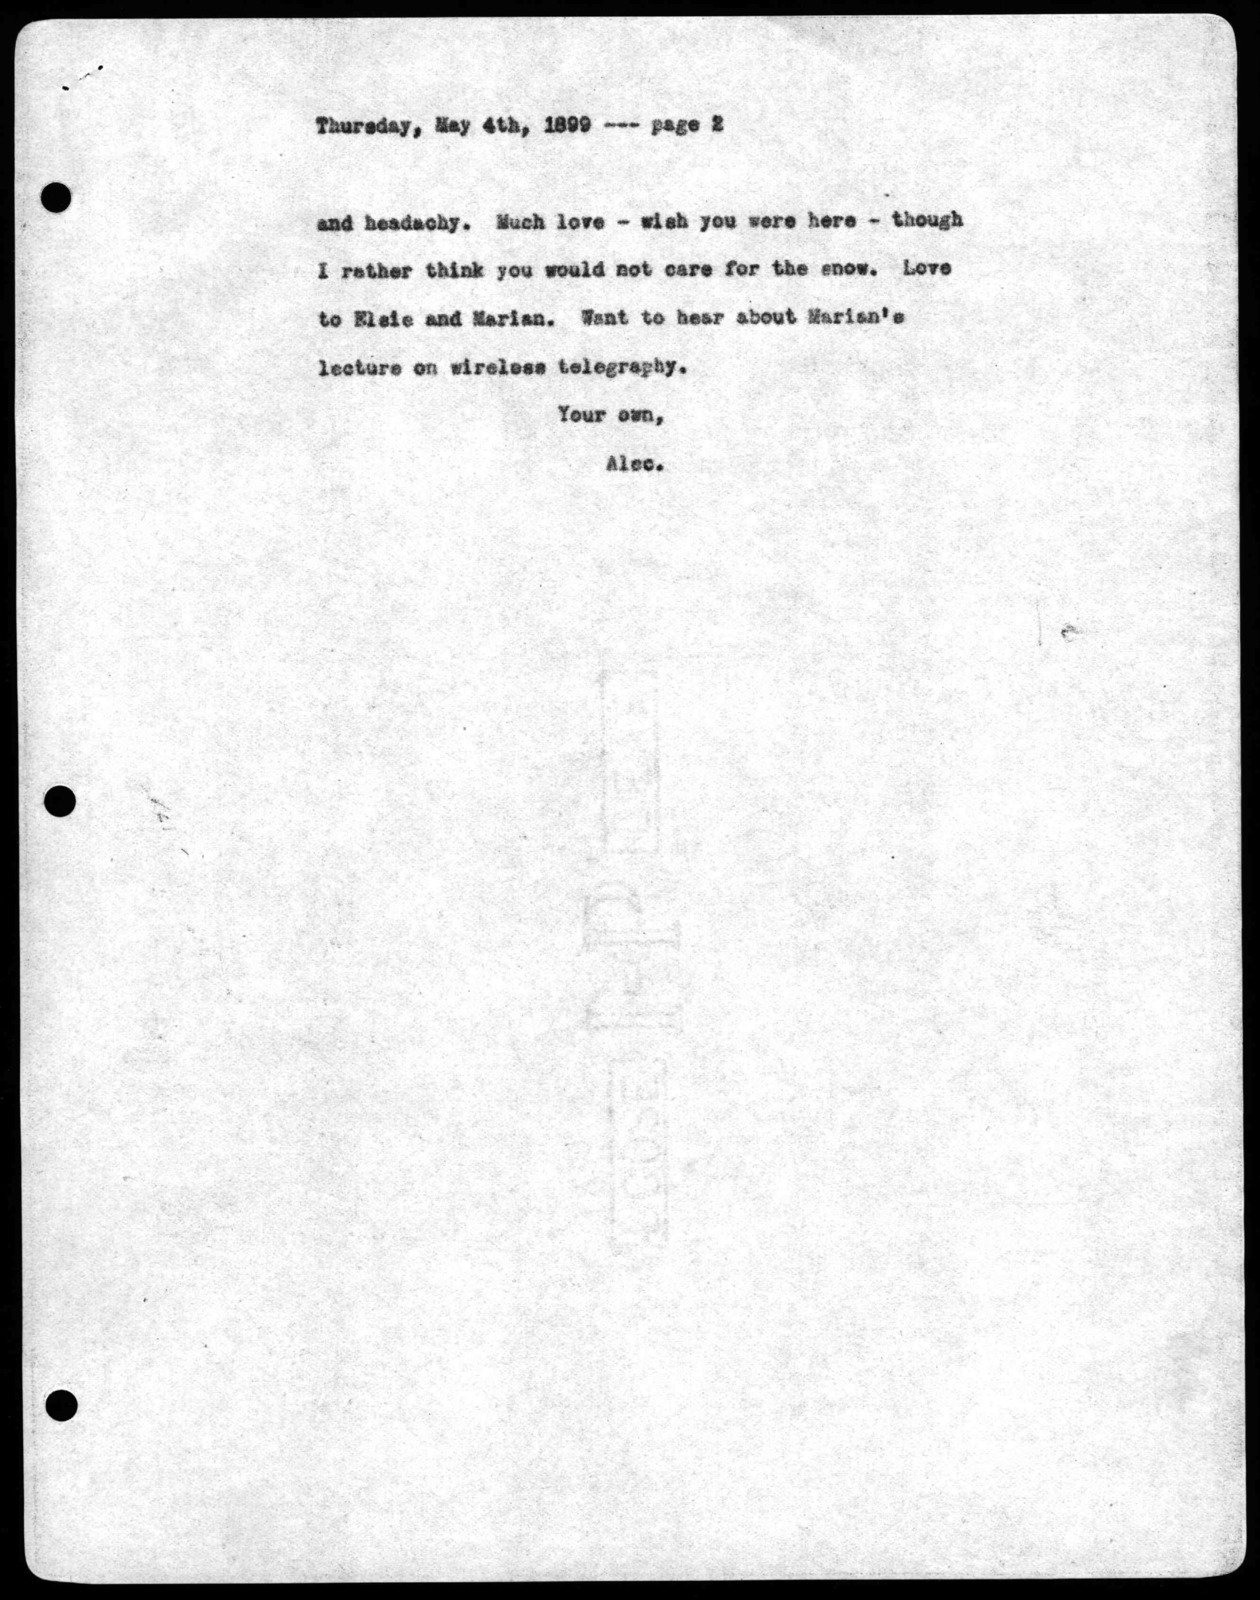 Letter from Alexander Graham Bell to Mabel Hubbard Bell, May 4, 1899